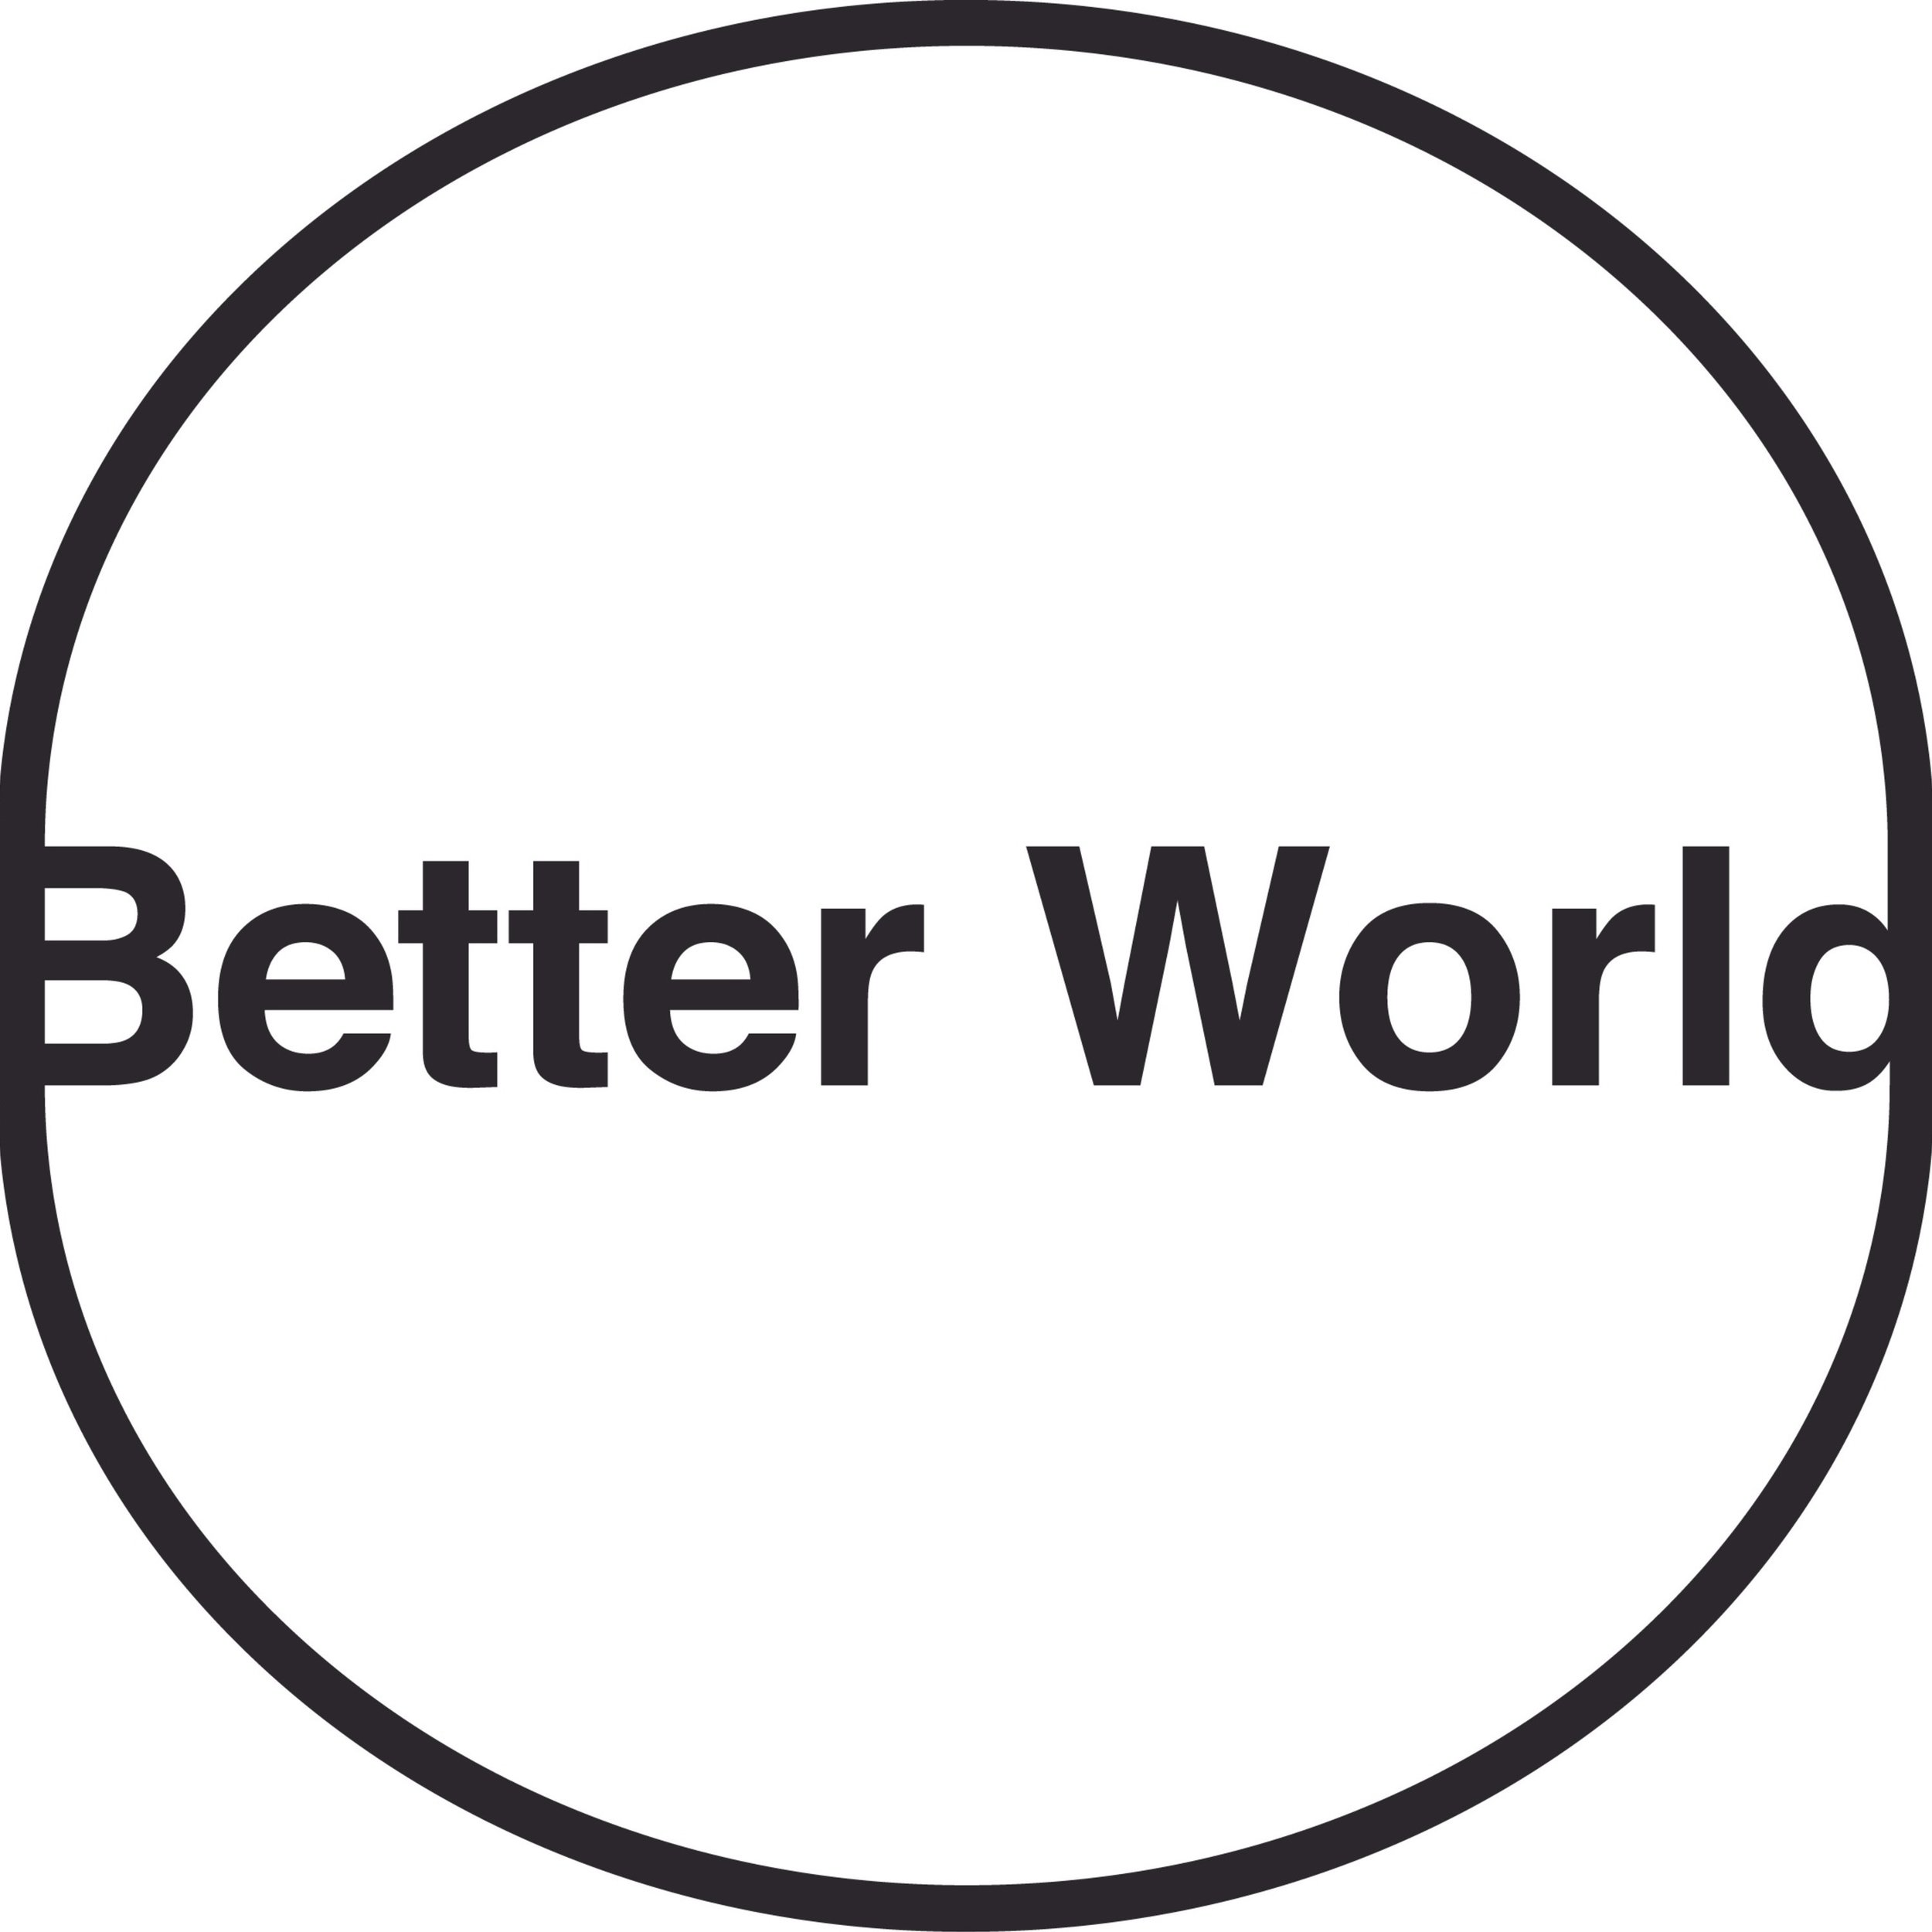 Better World.jpg